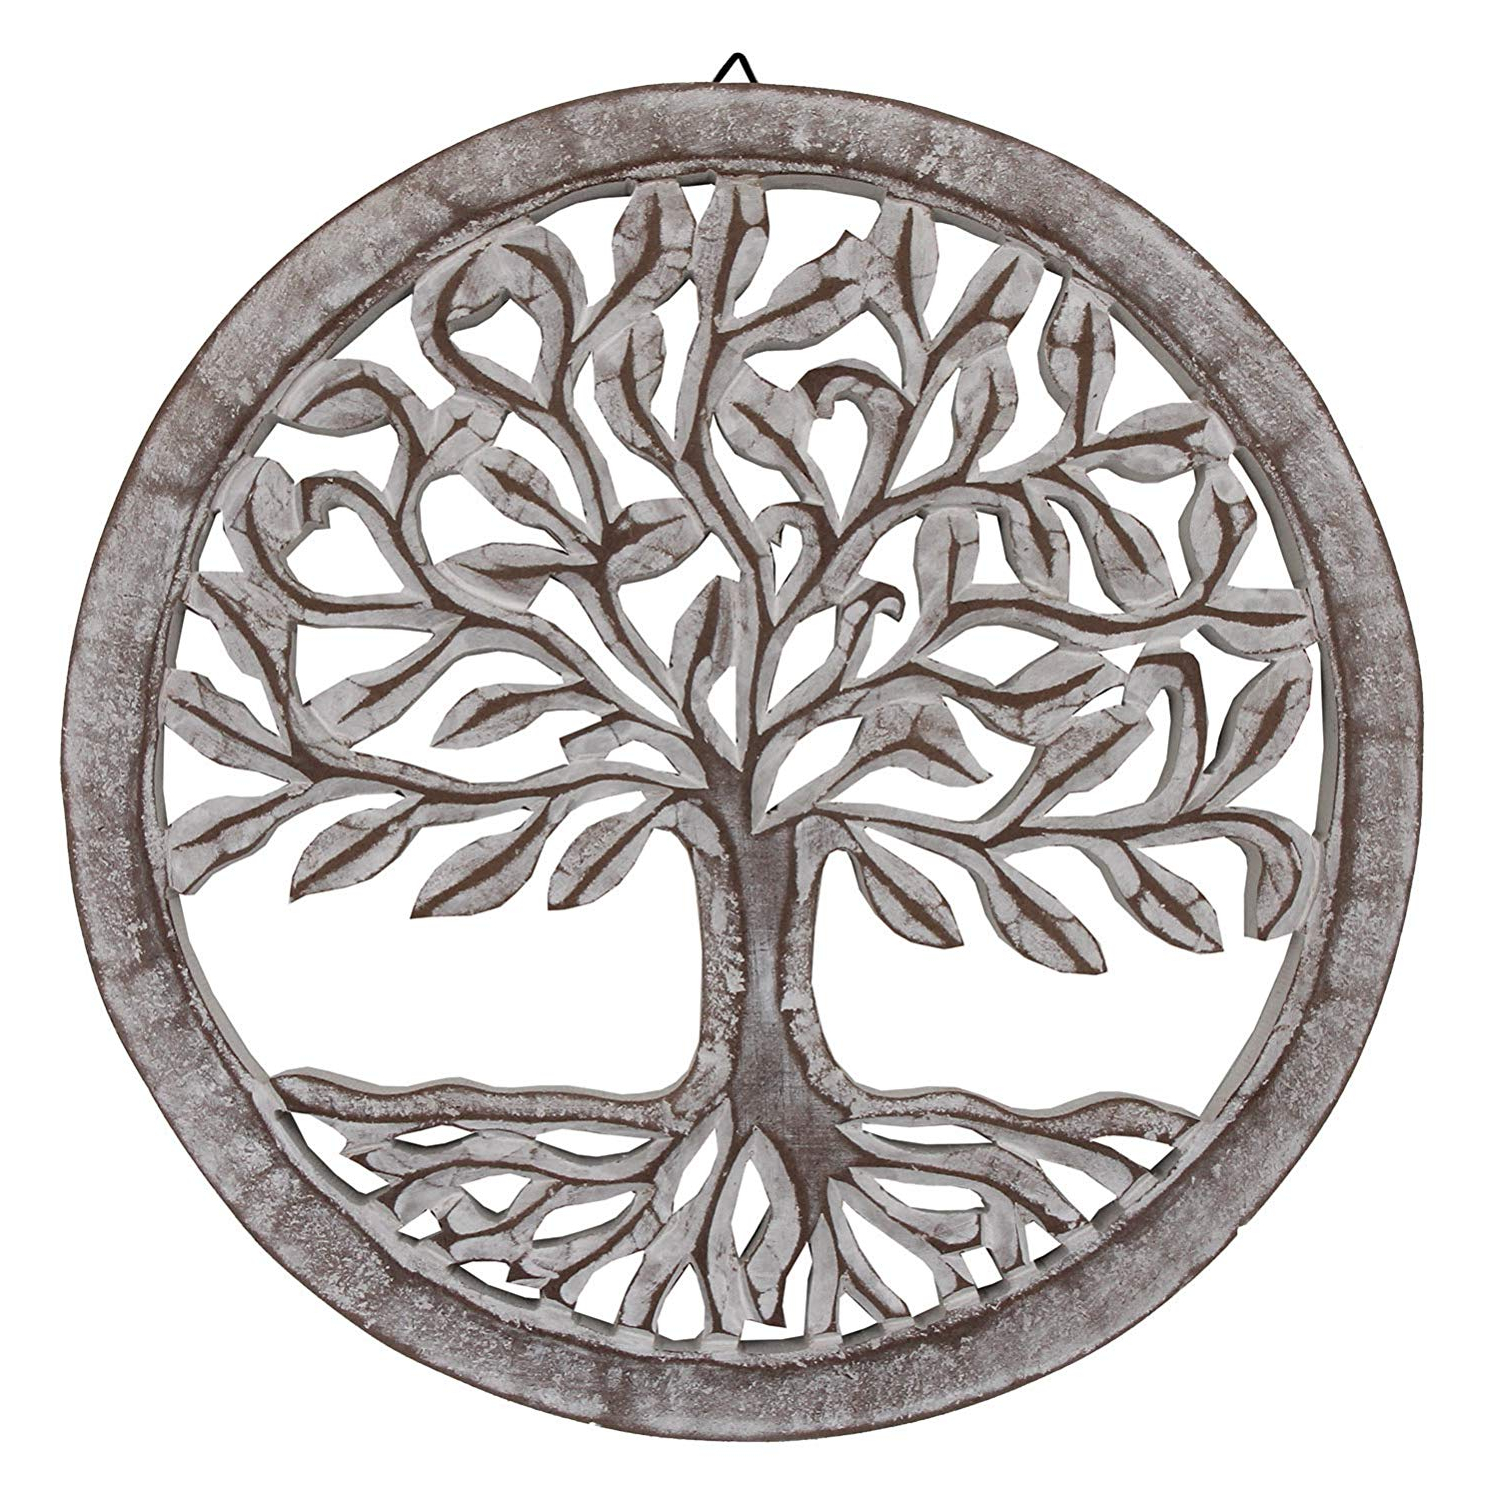 Amazon: Dharmaobjects Handcrafted Wooden Tree Life Wall Decor Inside Well Known Tree Of Life Wall Decor (Gallery 4 of 20)